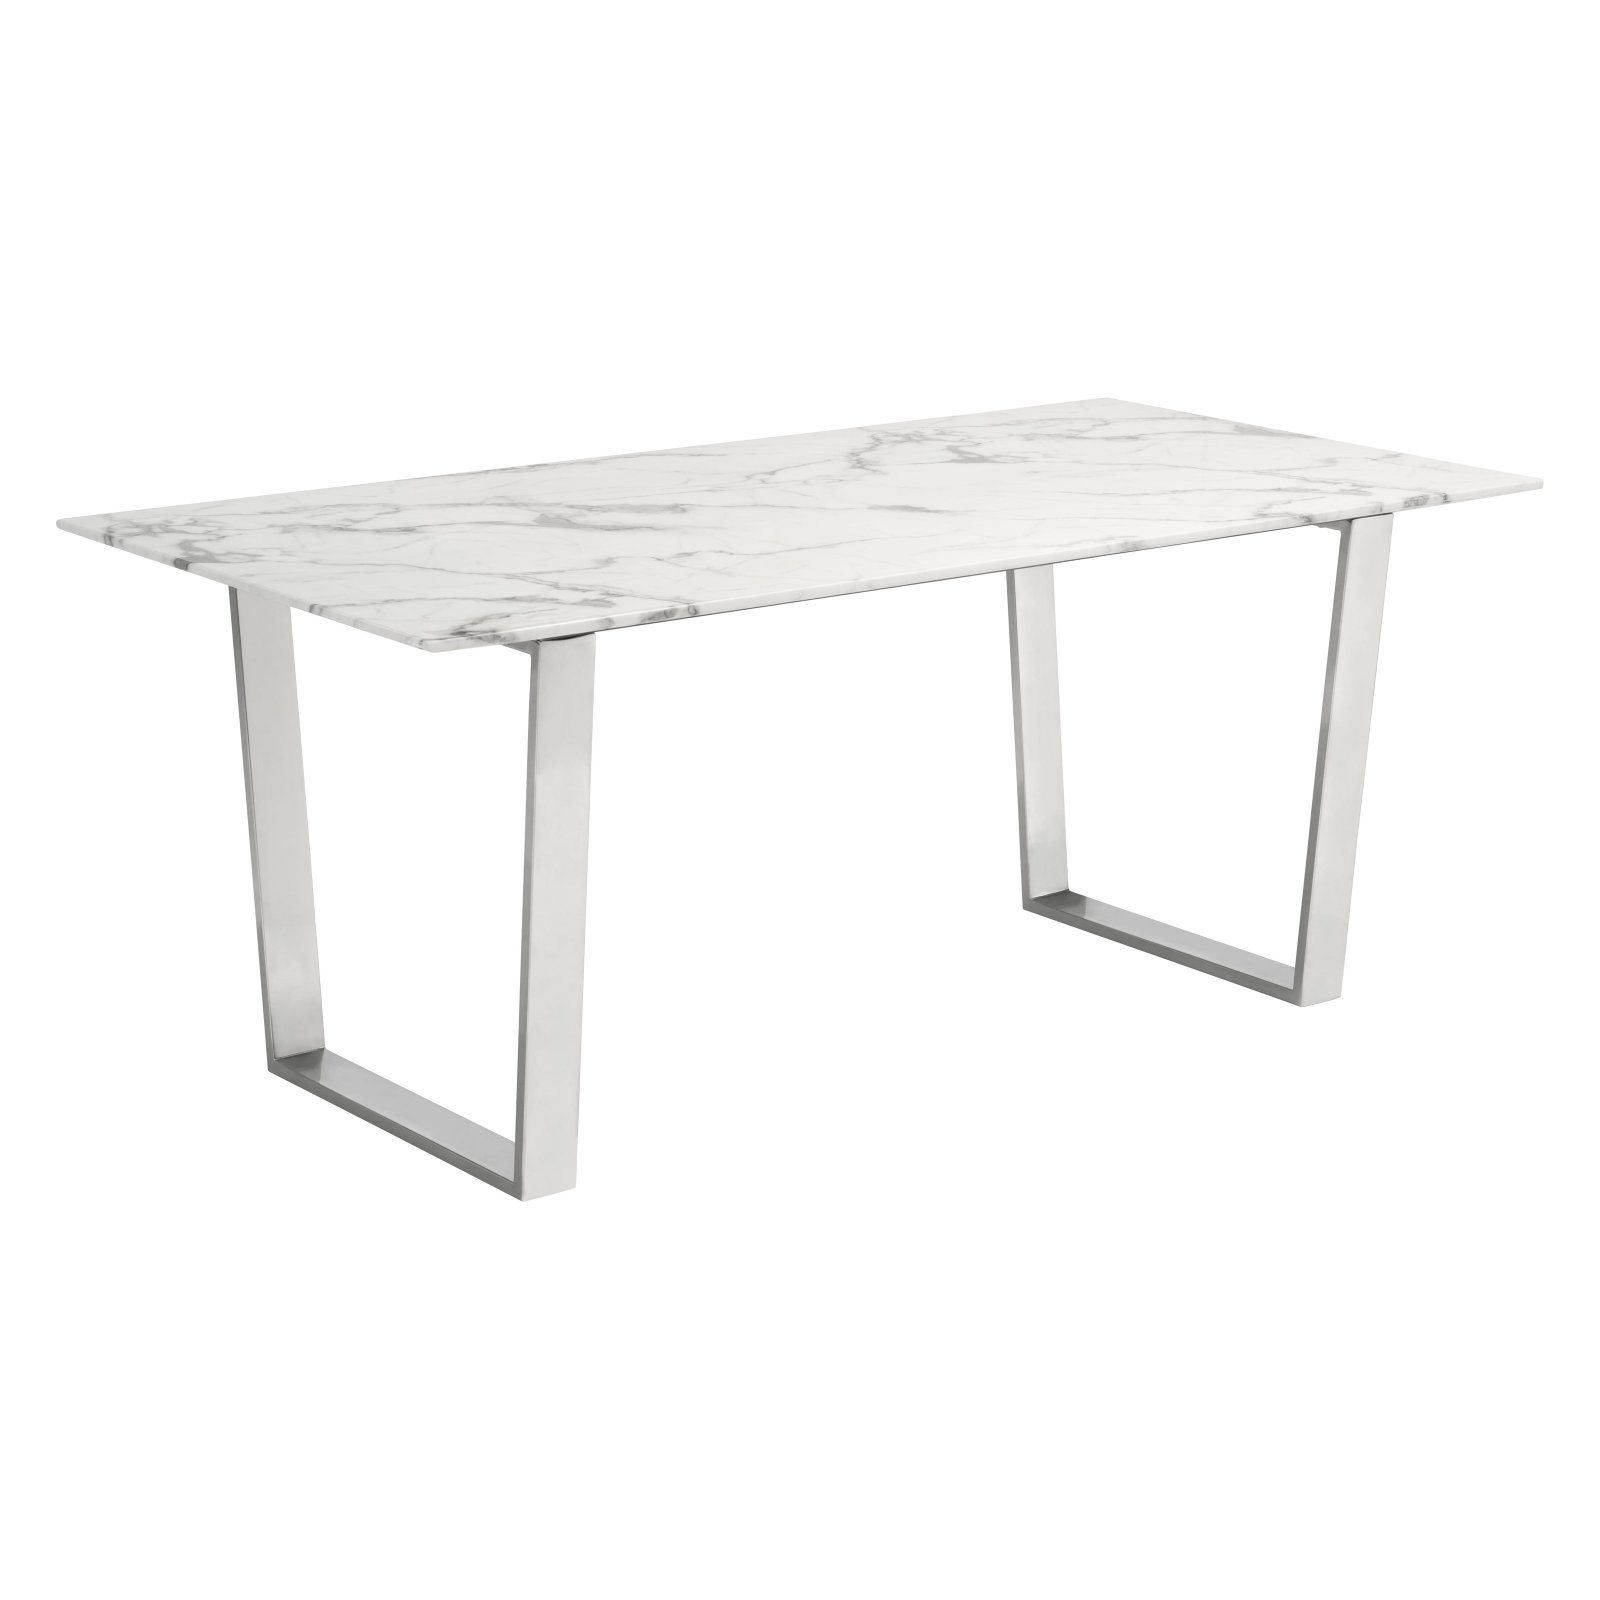 Zuo Modern Contemporary Atlas Stone Dining Table Stone Dining Table Marble Dining Stainless Steel Dining Table